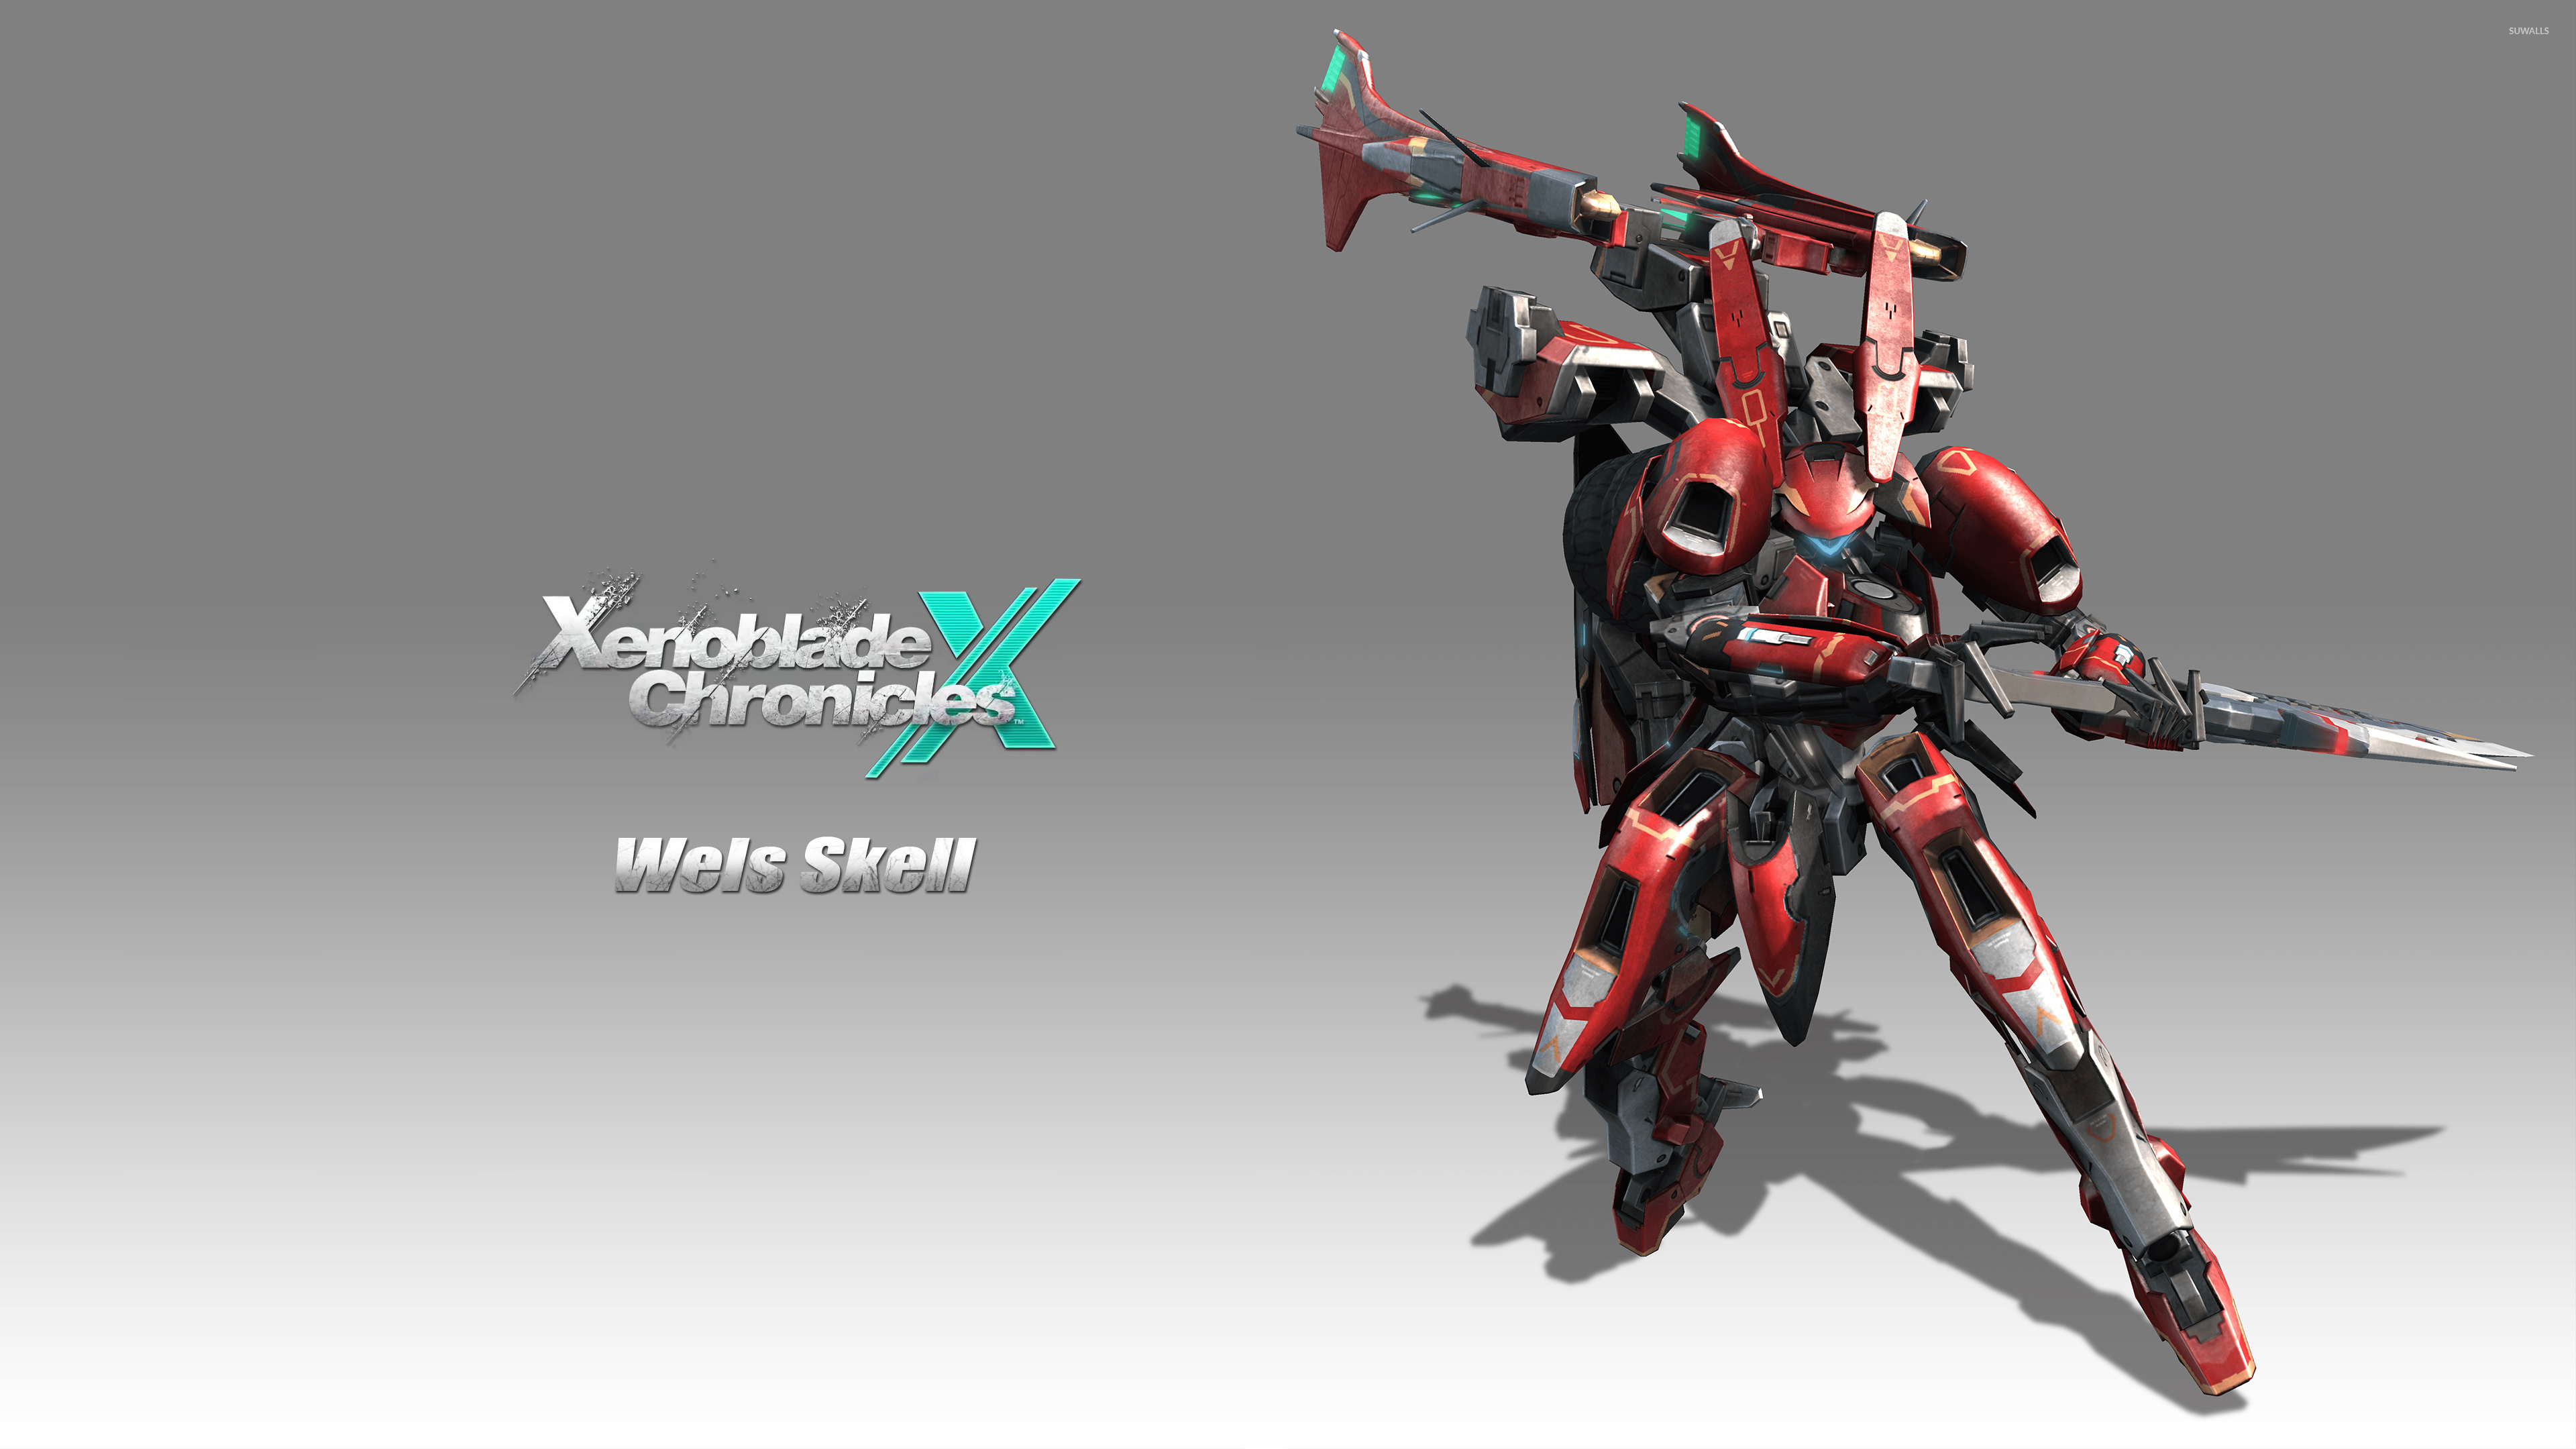 Wels Skell Xenoblade Chronicles X Wallpaper Game Wallpapers